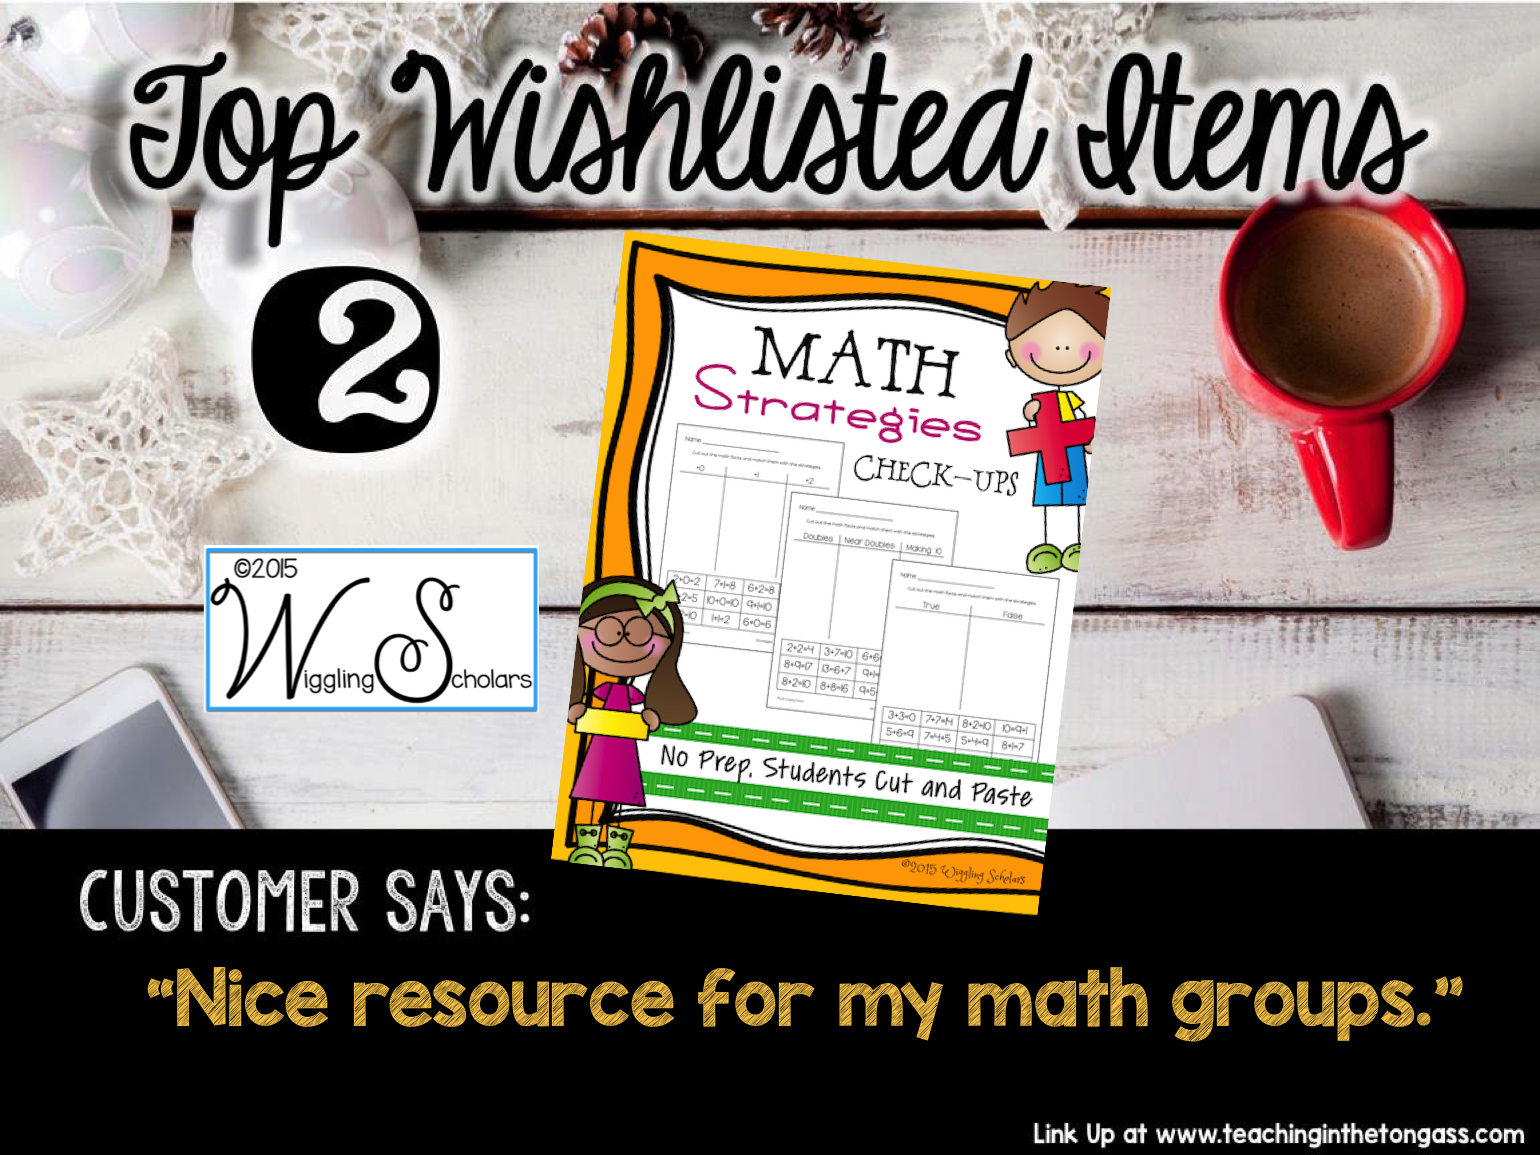 Math Strategies by Wiggling Scholars